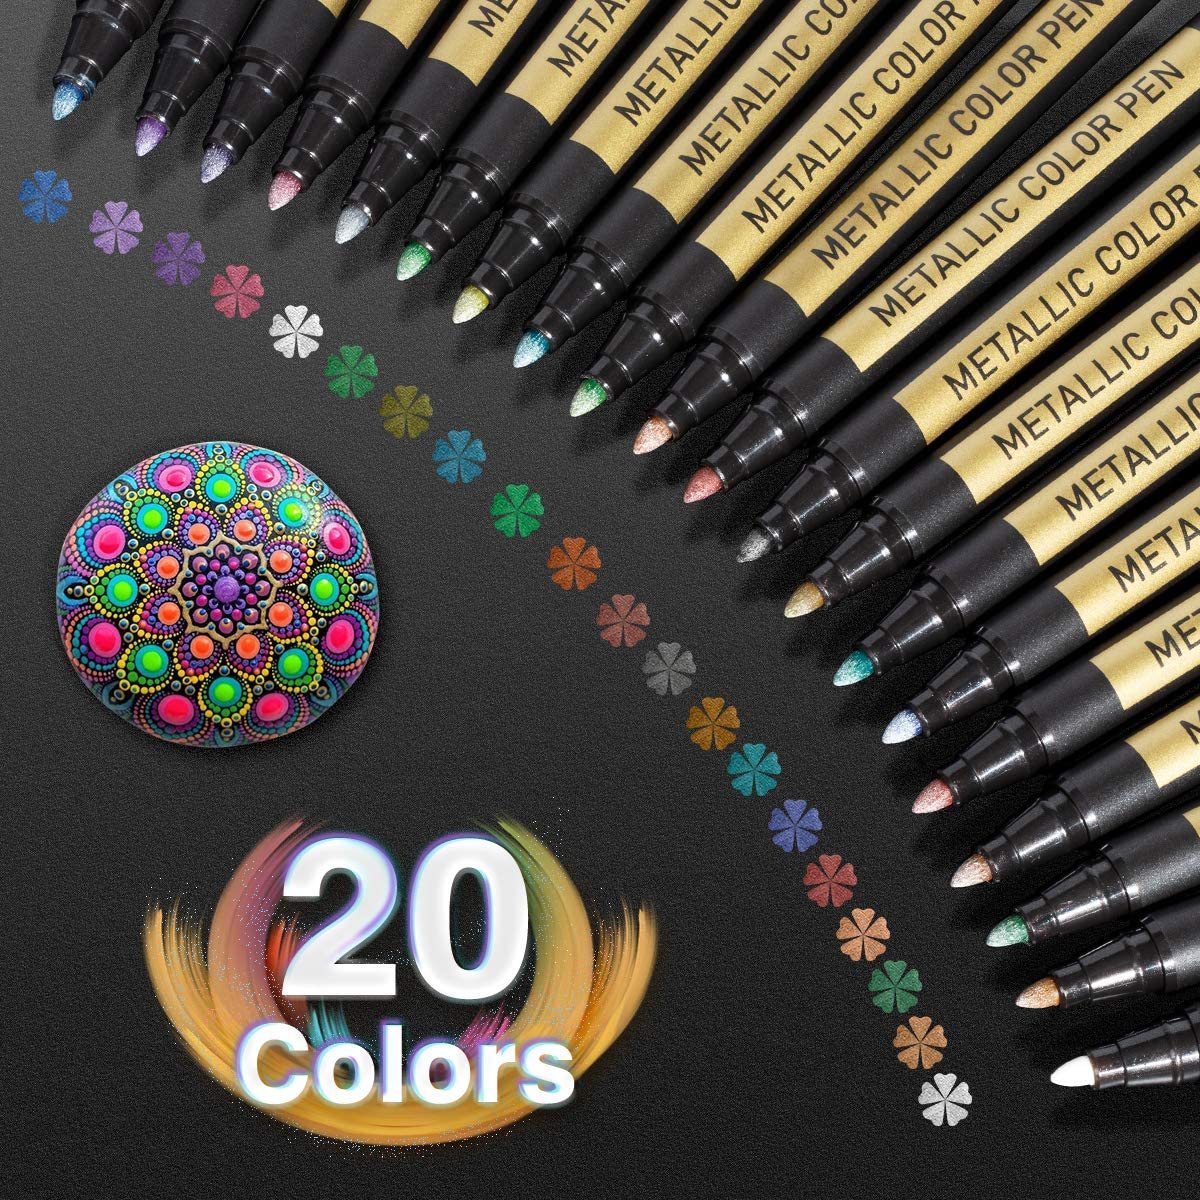 Metallic Paint Markers Pens Set 20 Colors Paint Pen Craft Markers For Rock For Ebay